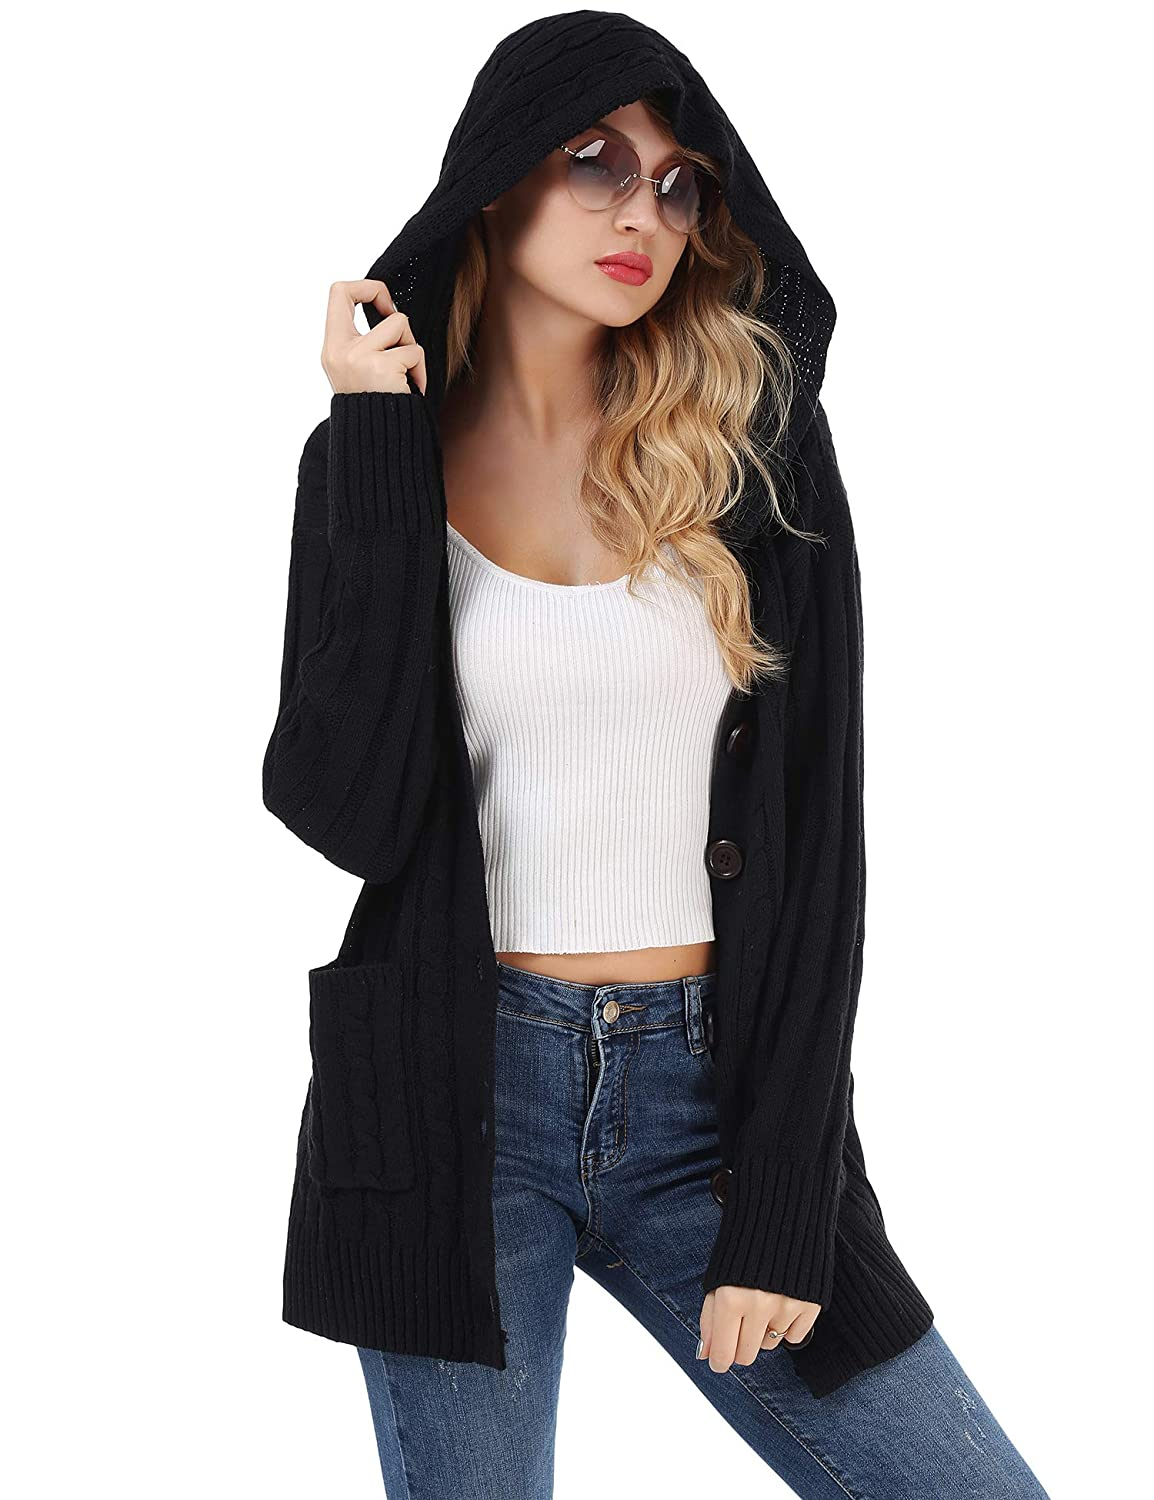 2e110100a58 PACKAGE CONTENT - 1 X Imported Women Cardigan Sweater     WOMEN CARDIGAN  DESIGN - Casual Loose Button Down Chunky Cardigan Sweater with Hooded